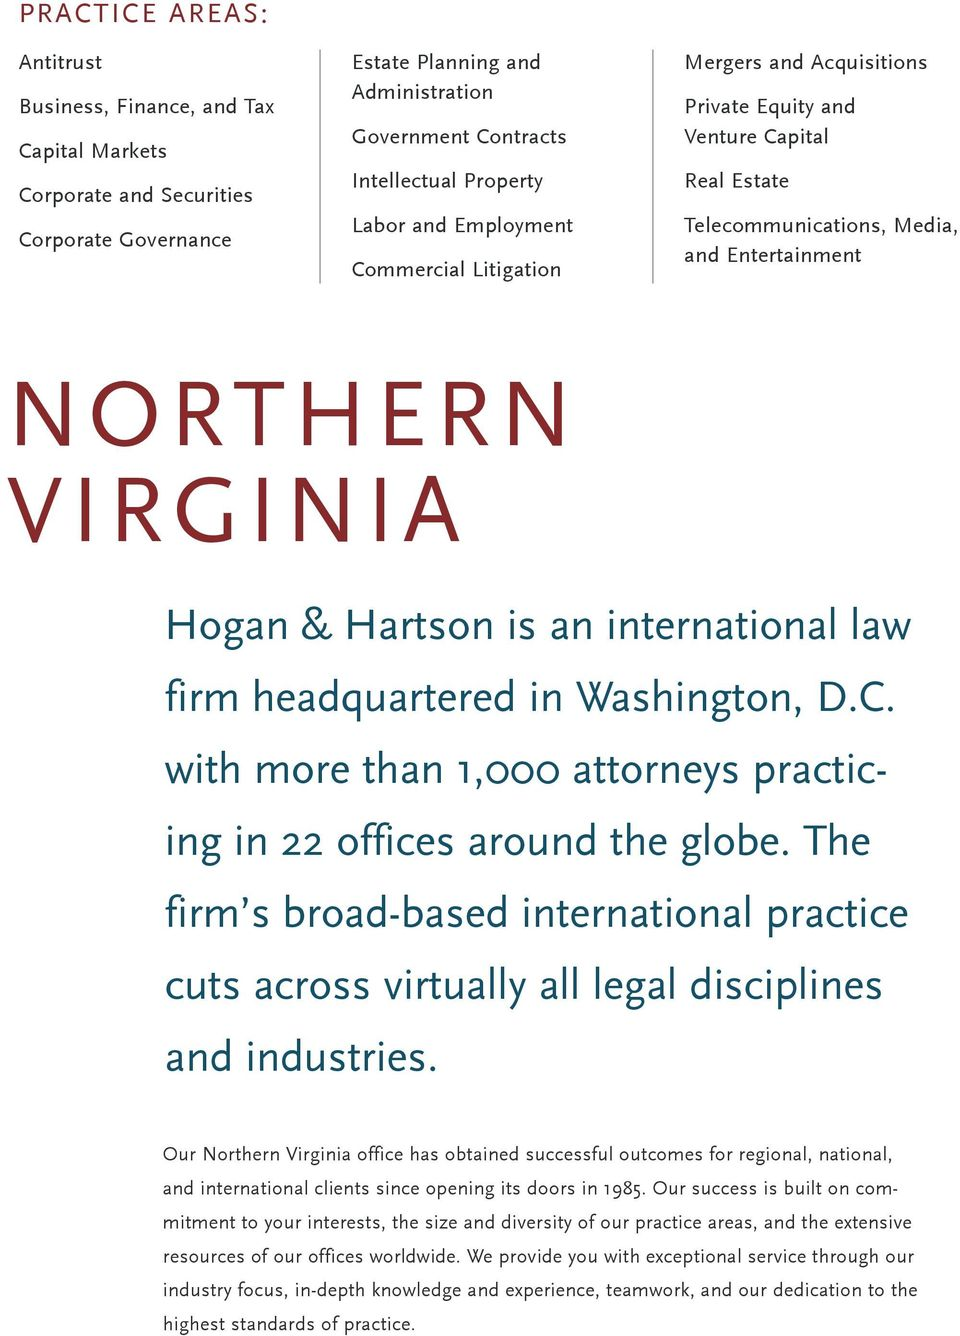 international law firm headquartered in Washington, D.C. with more than 1,000 attorneys practicing in 22 offices around the globe.